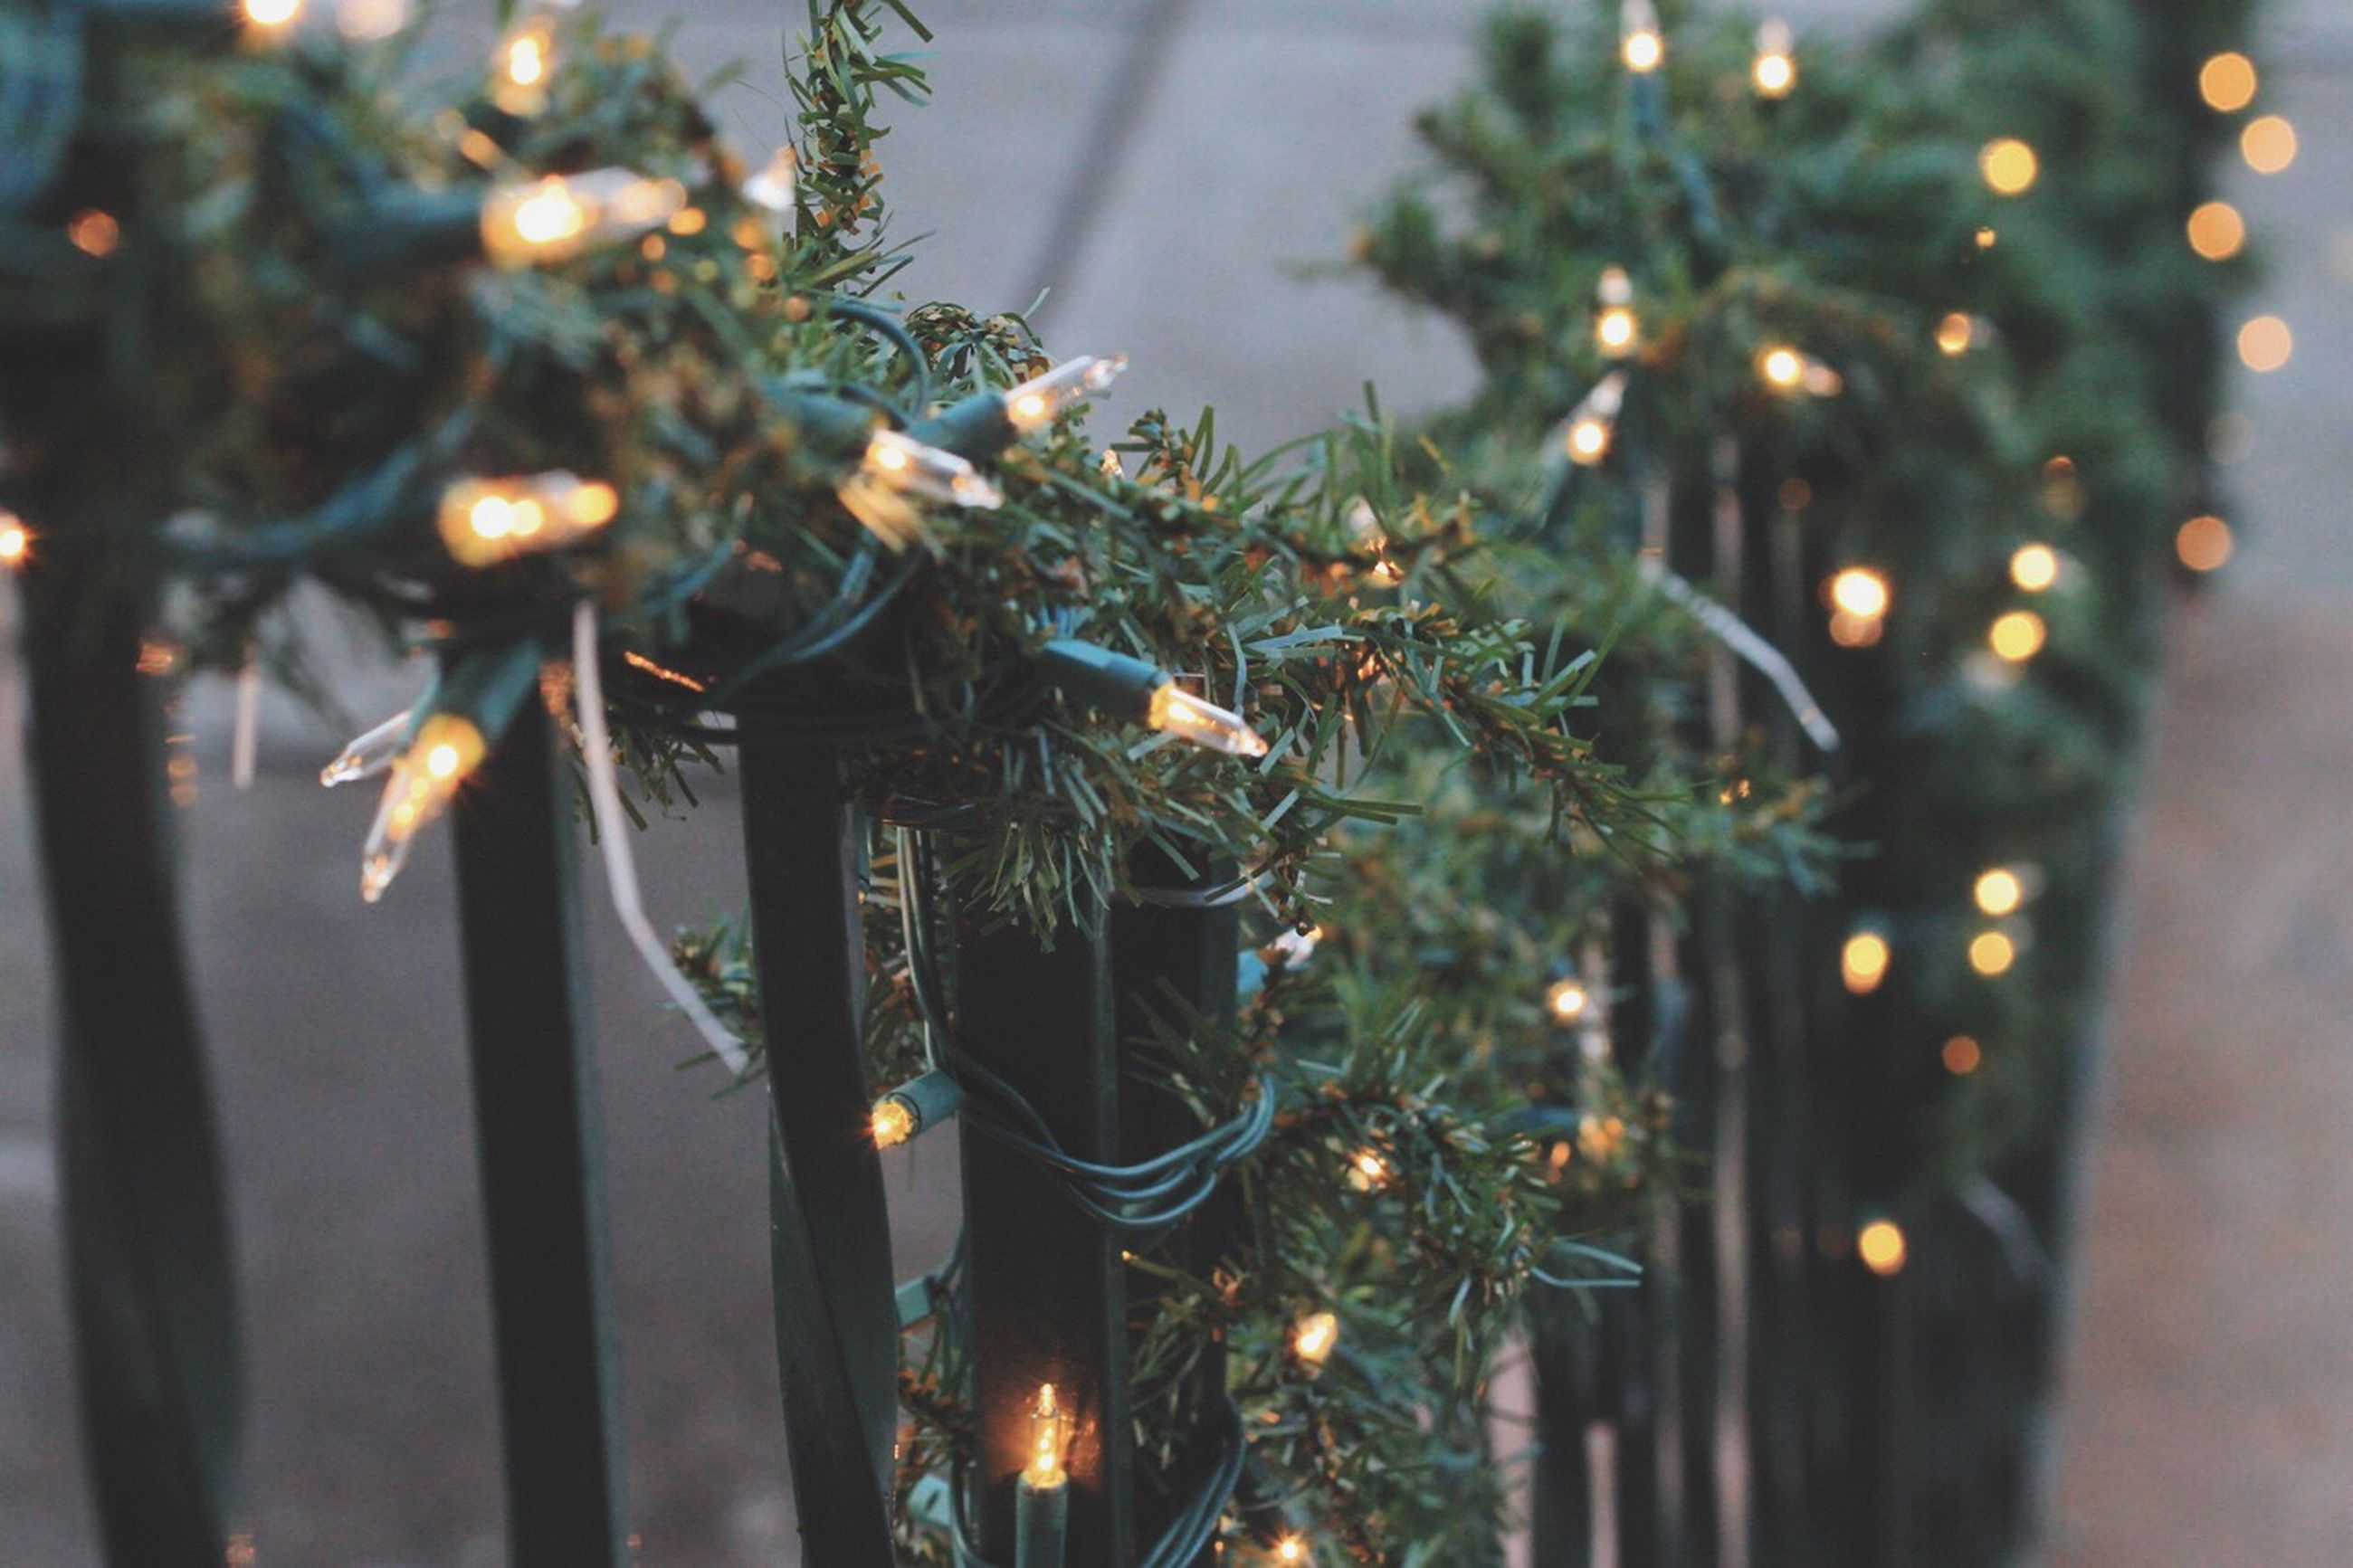 illuminated, focus on foreground, close-up, night, growth, lighting equipment, decoration, plant, fragility, hanging, selective focus, water, nature, no people, christmas tree, reflection, outdoors, flower, christmas decoration, spider web